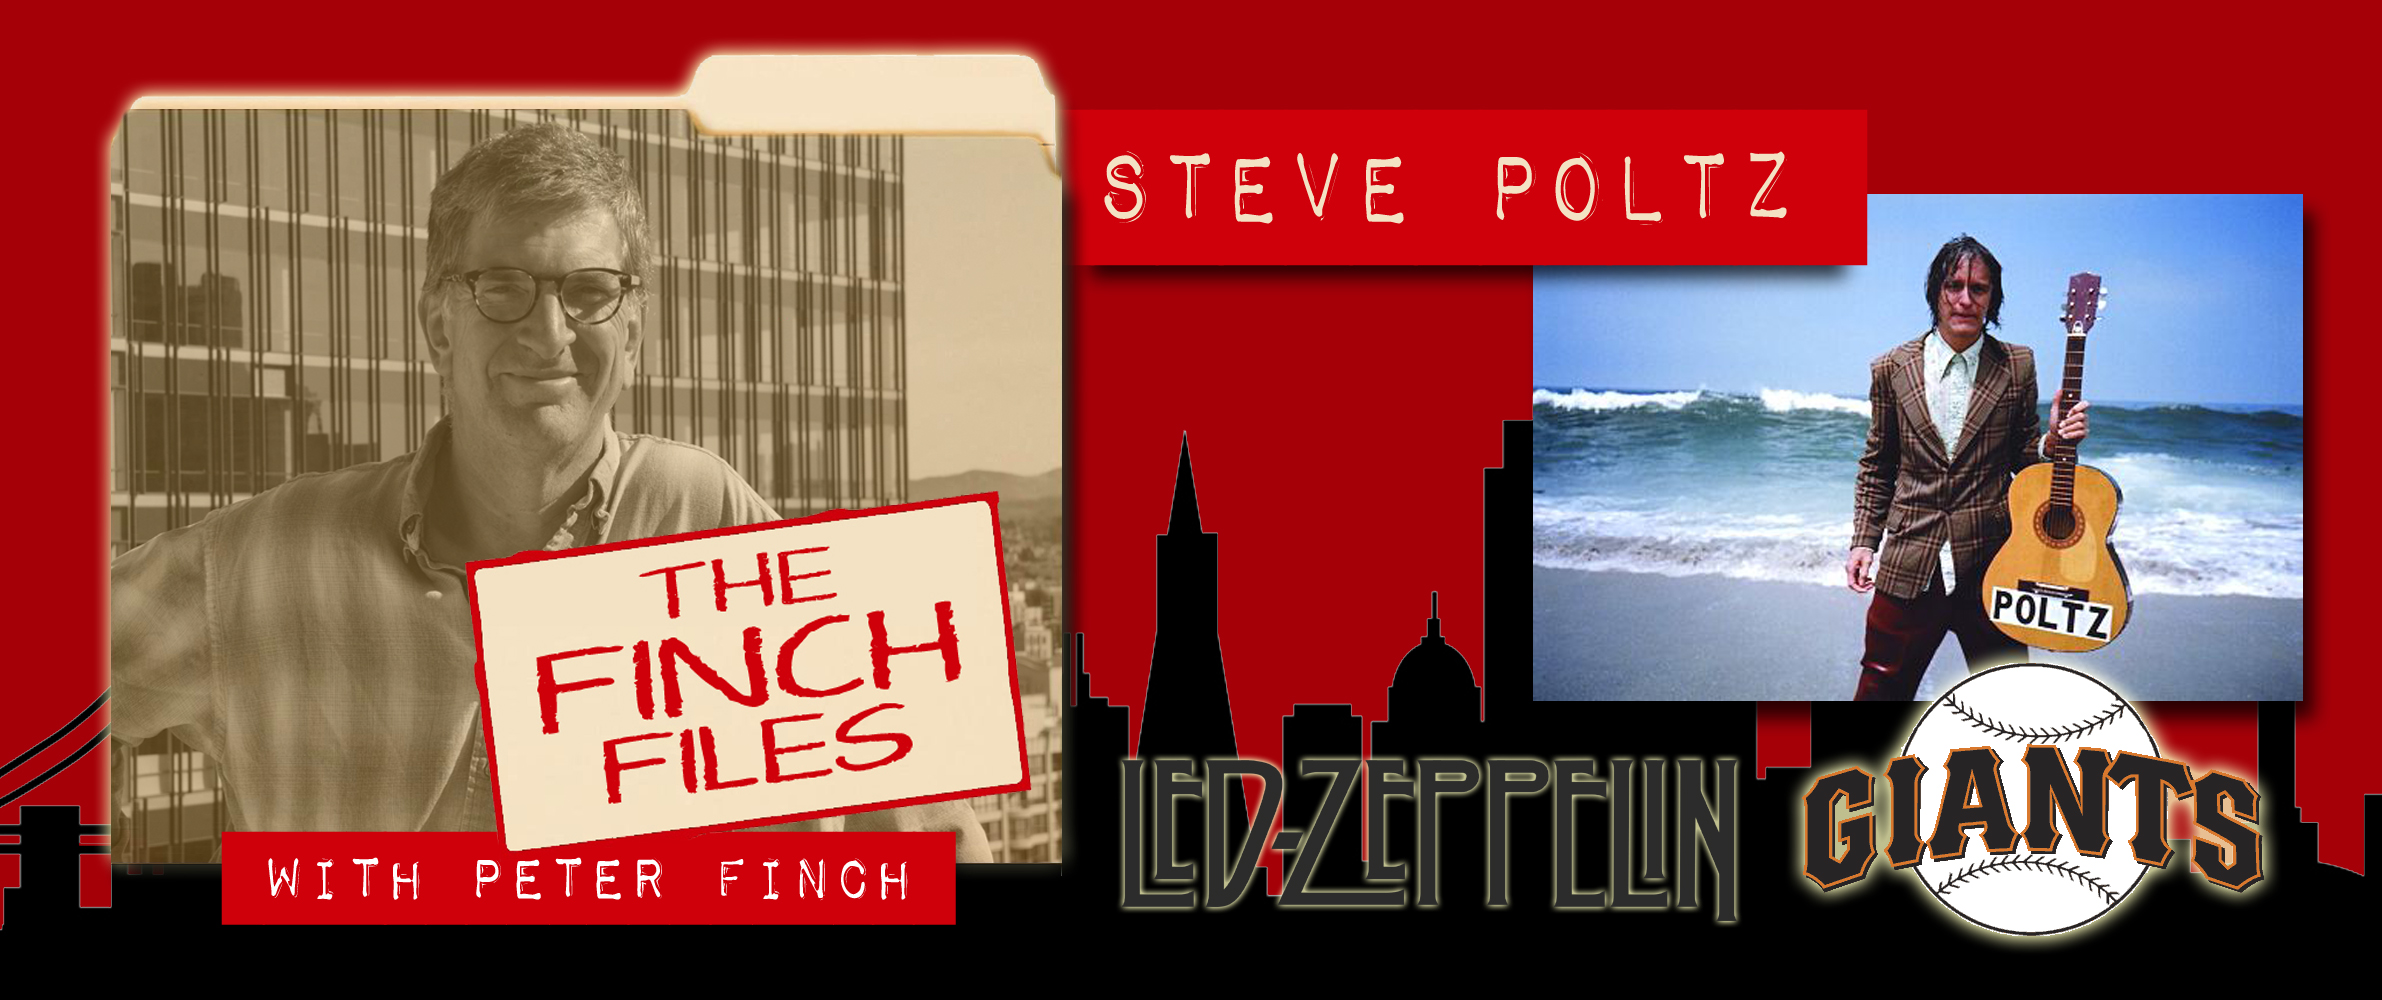 The Finch Files: Steve Poltz